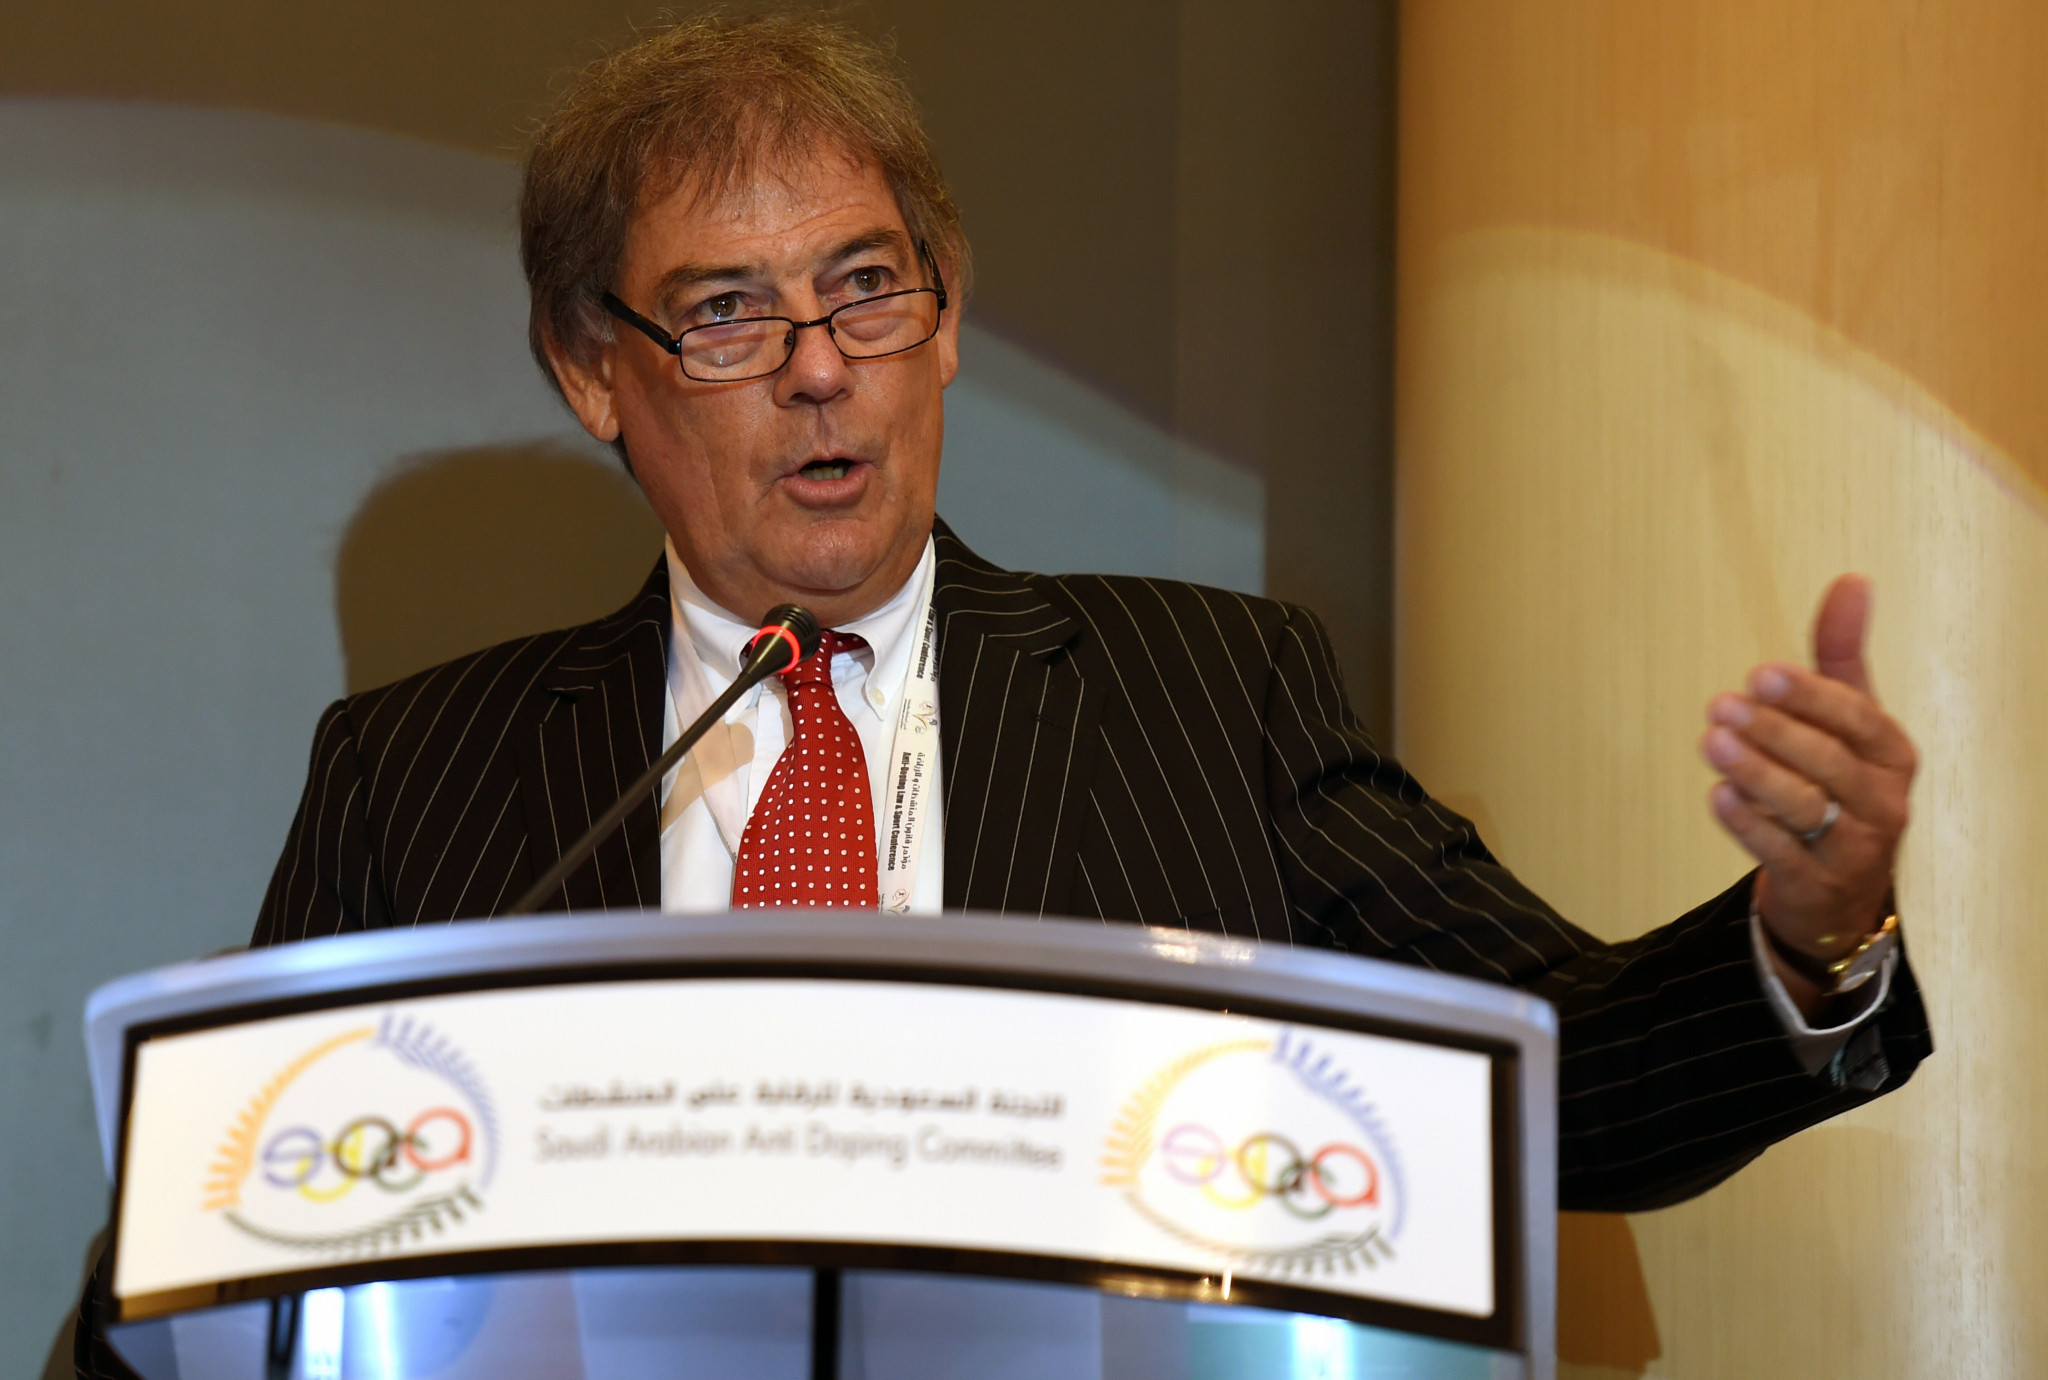 David Howman, head of the IAAF's Integrity Unity will present a keynote speech on protecting athletes' rights  ©Getty Images